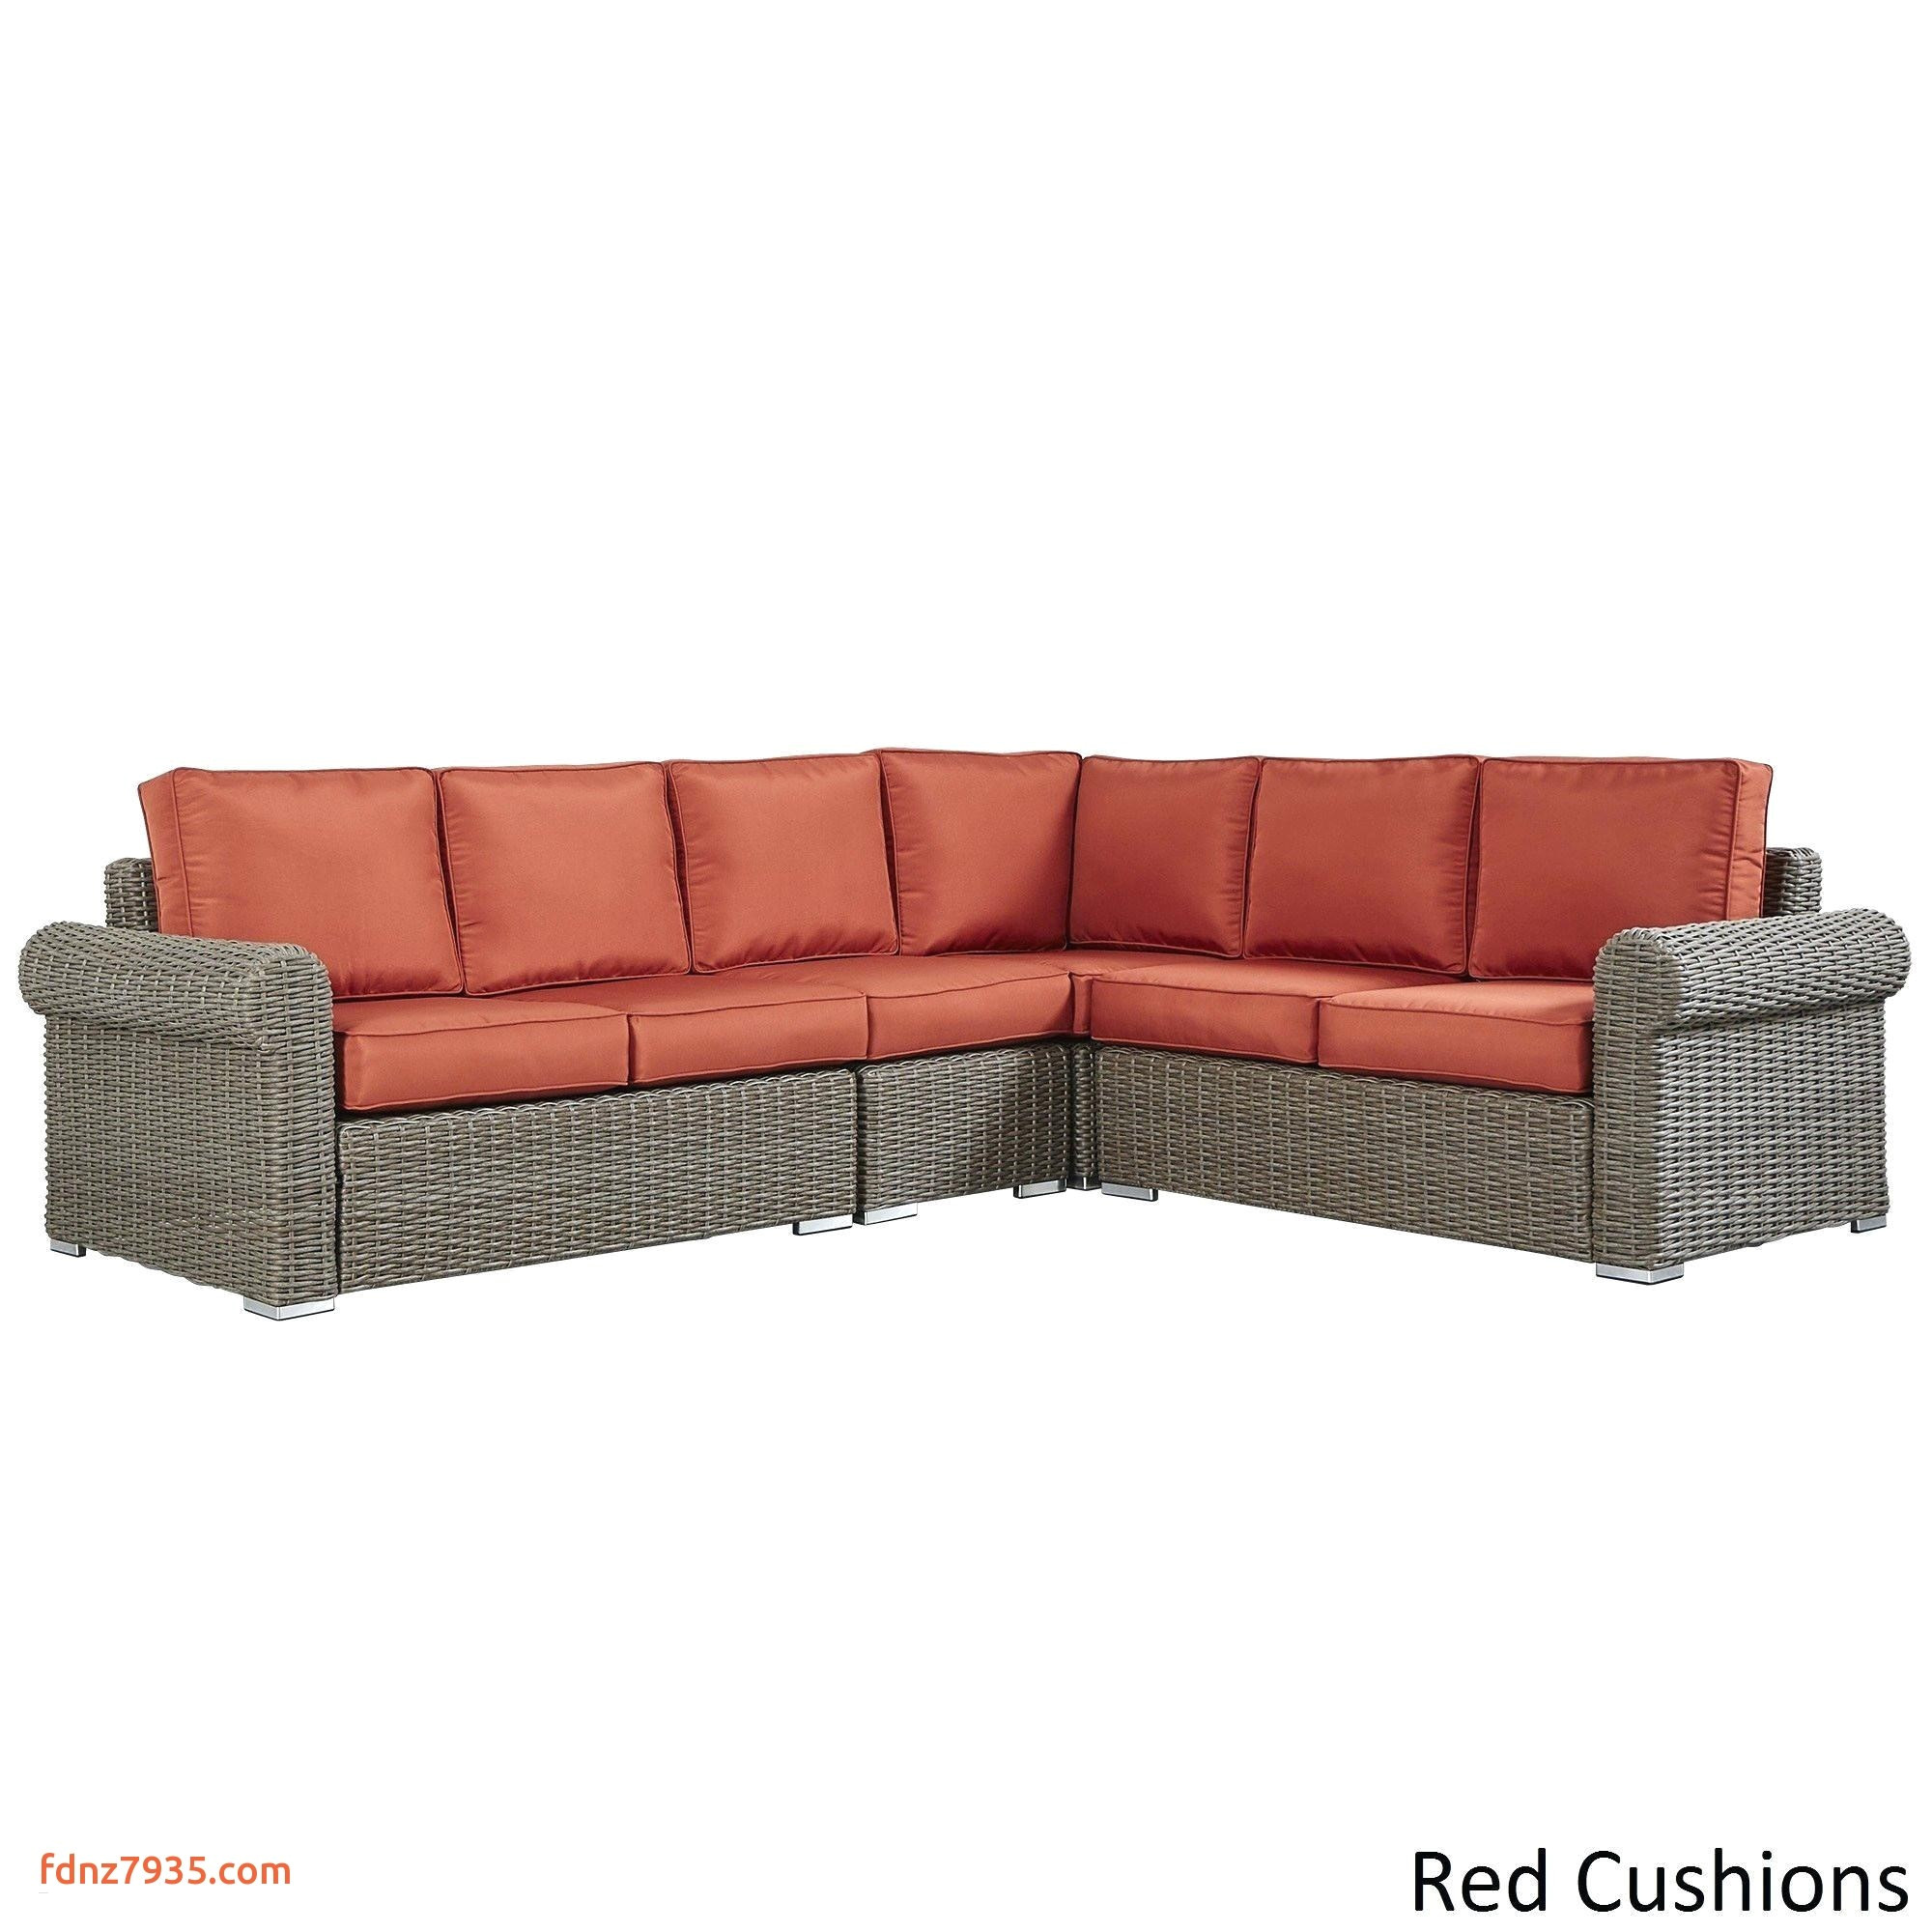 outdoor dining tables sale nice patio dining sets sale luxury wicker outdoor sofa 0d